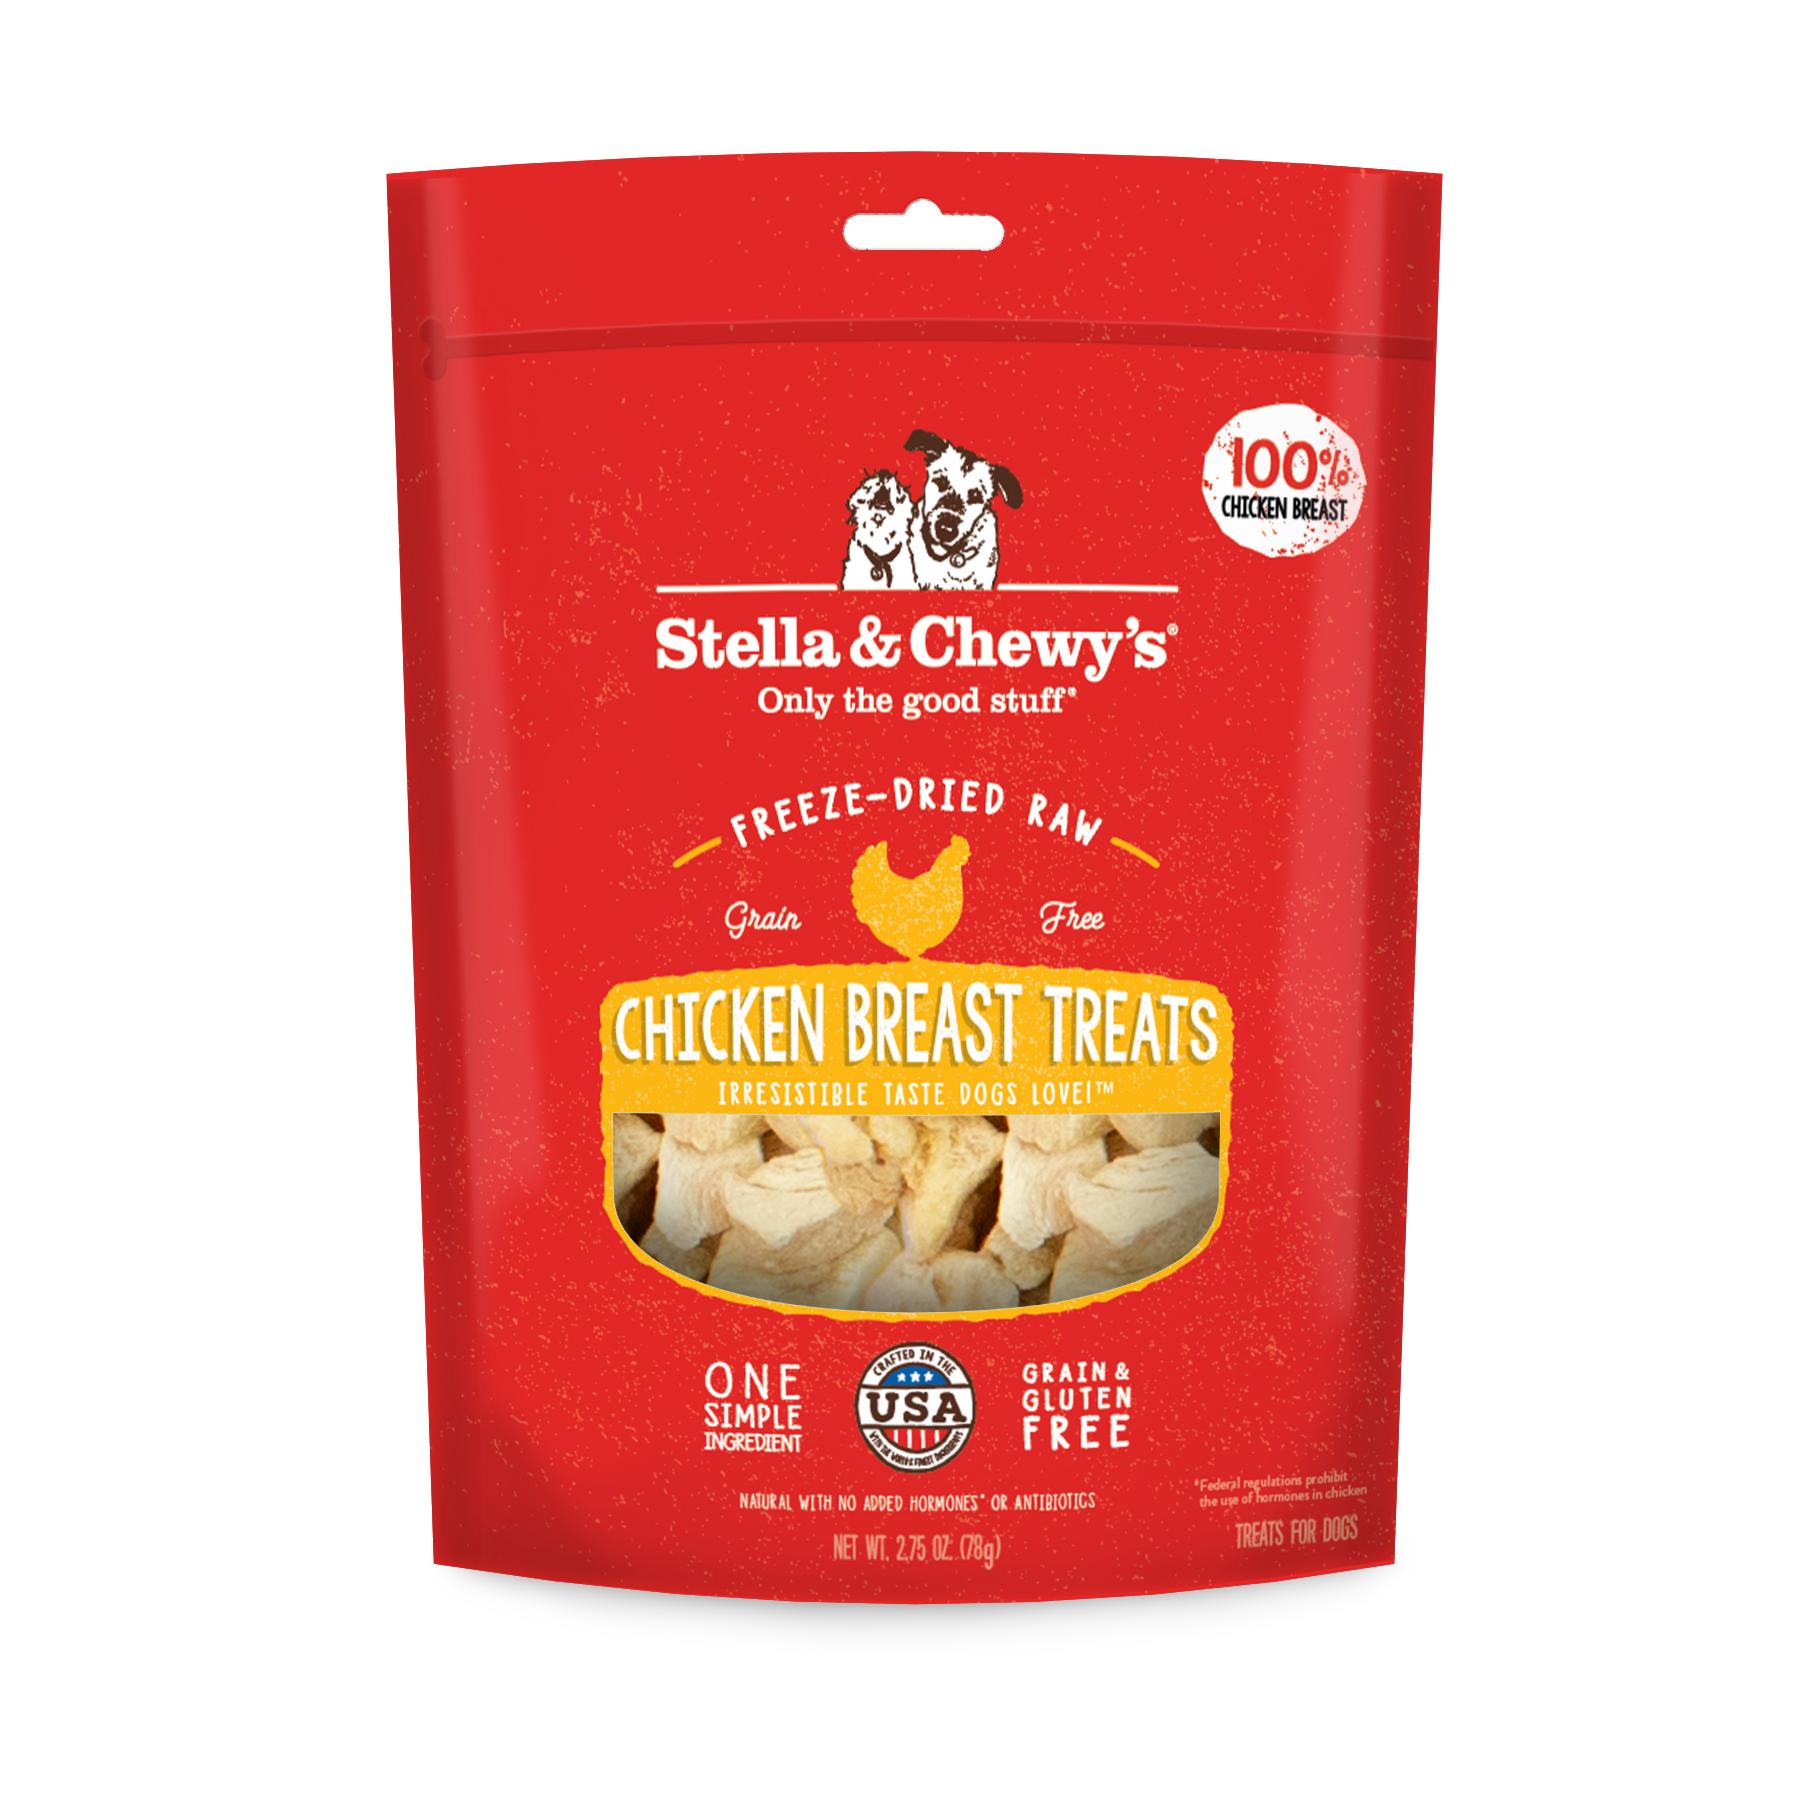 Stella & Chewy's Chicken Breast Freeze-Dried Dog Treats, 2.75-oz (Size: 2.75-oz) Image